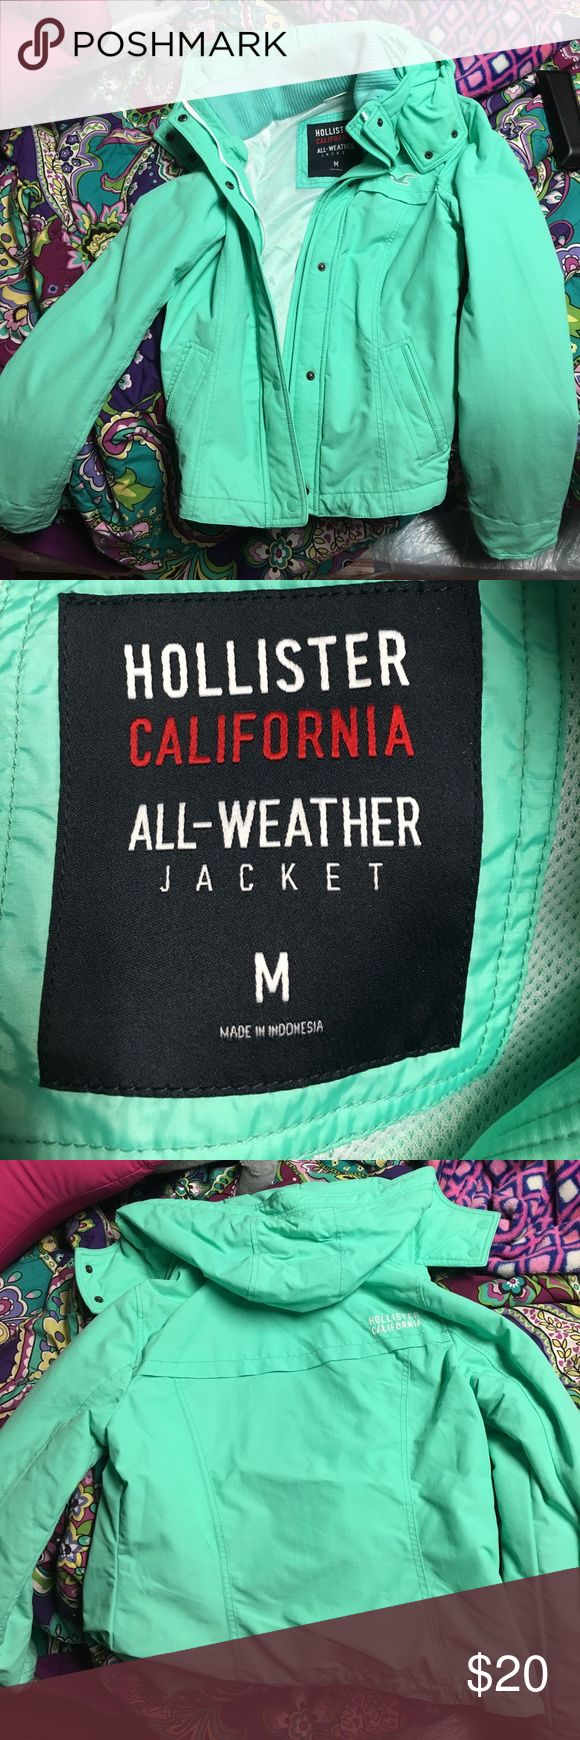 Hollister coat Stylish, warm coat! Worn once, does not fit like a medium more like a small. Jackets & Coats Puffers